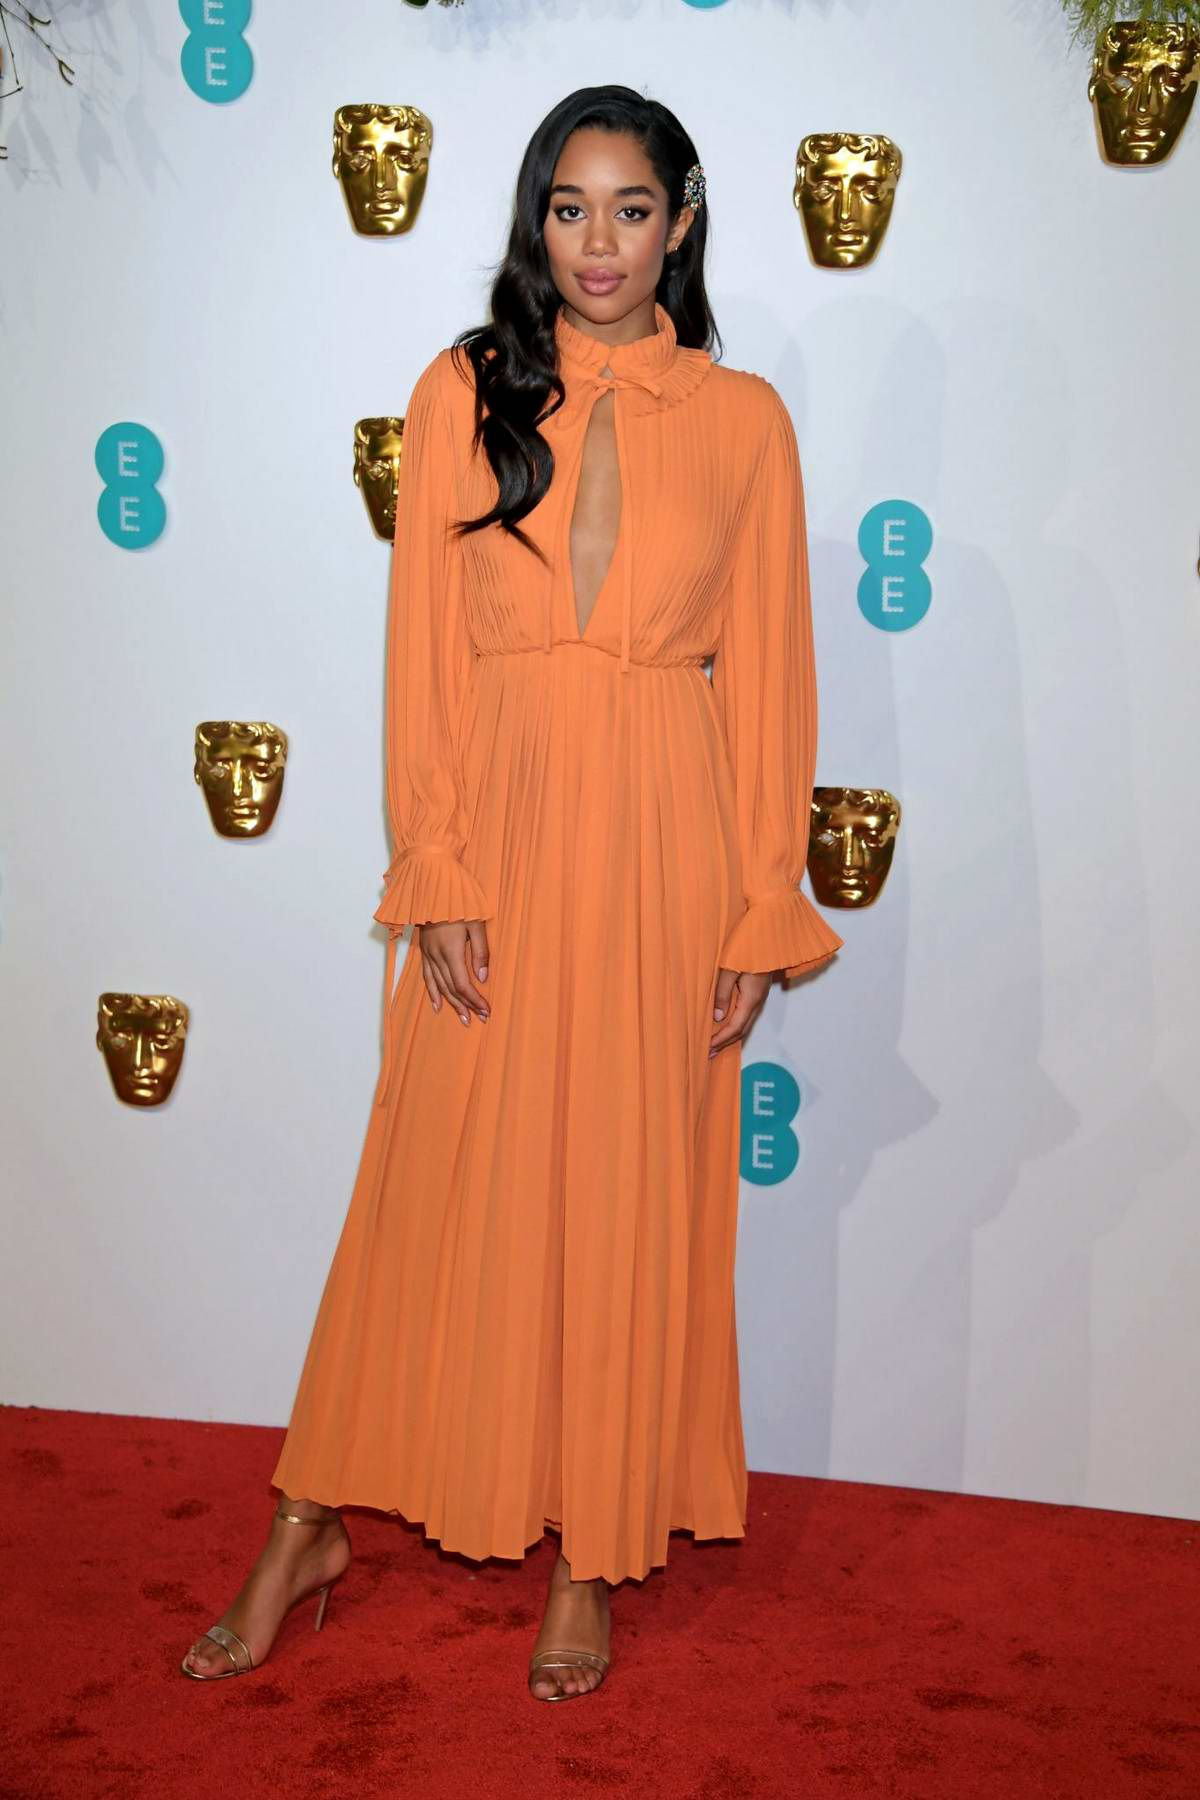 Laura Harrier attends the 72nd EE British Academy Film Awards (BAFTA 2019) at Royal Albert Hall in London, UK